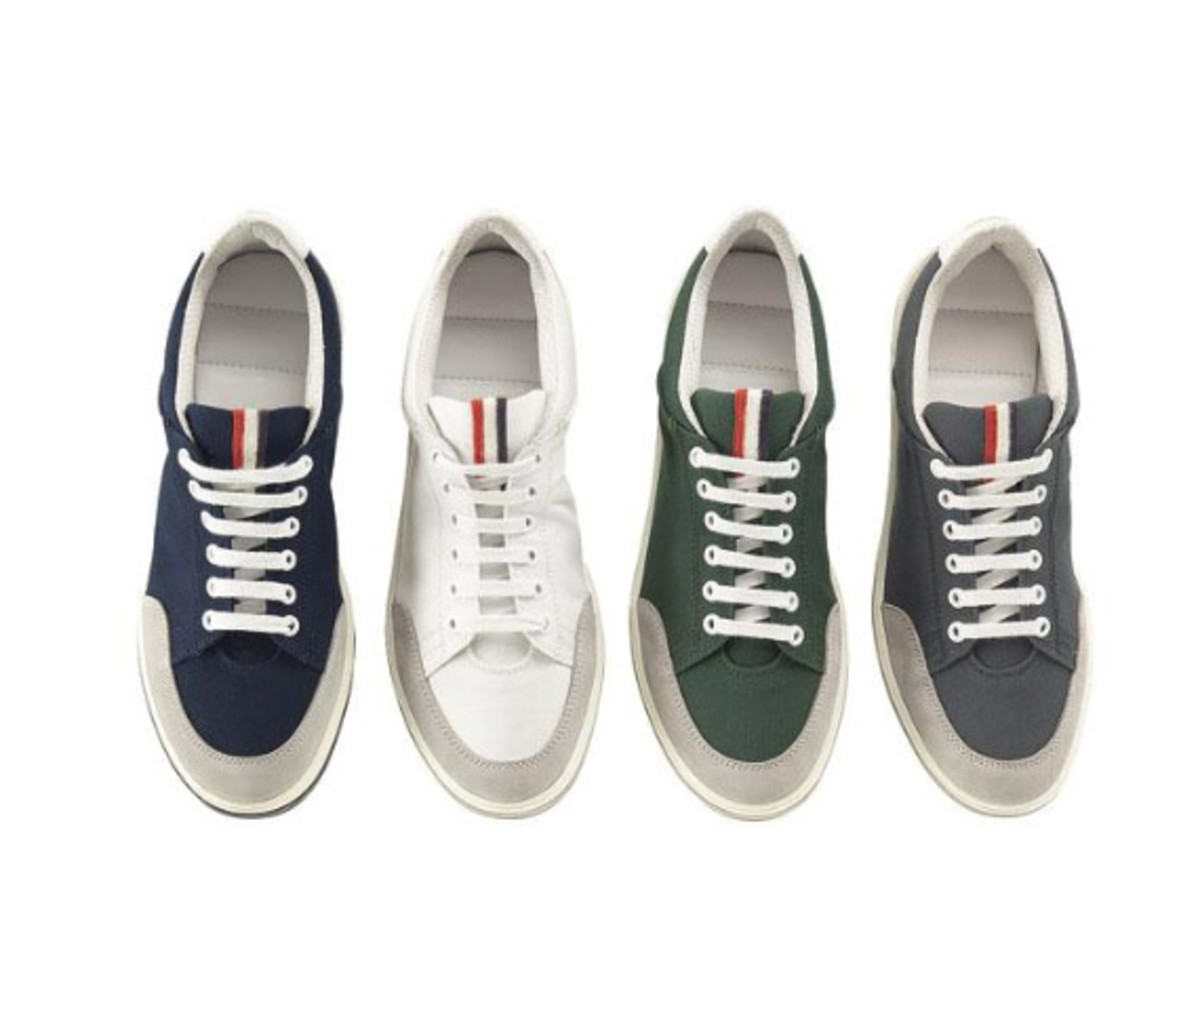 moncler-ss10-sneakers-collection-6